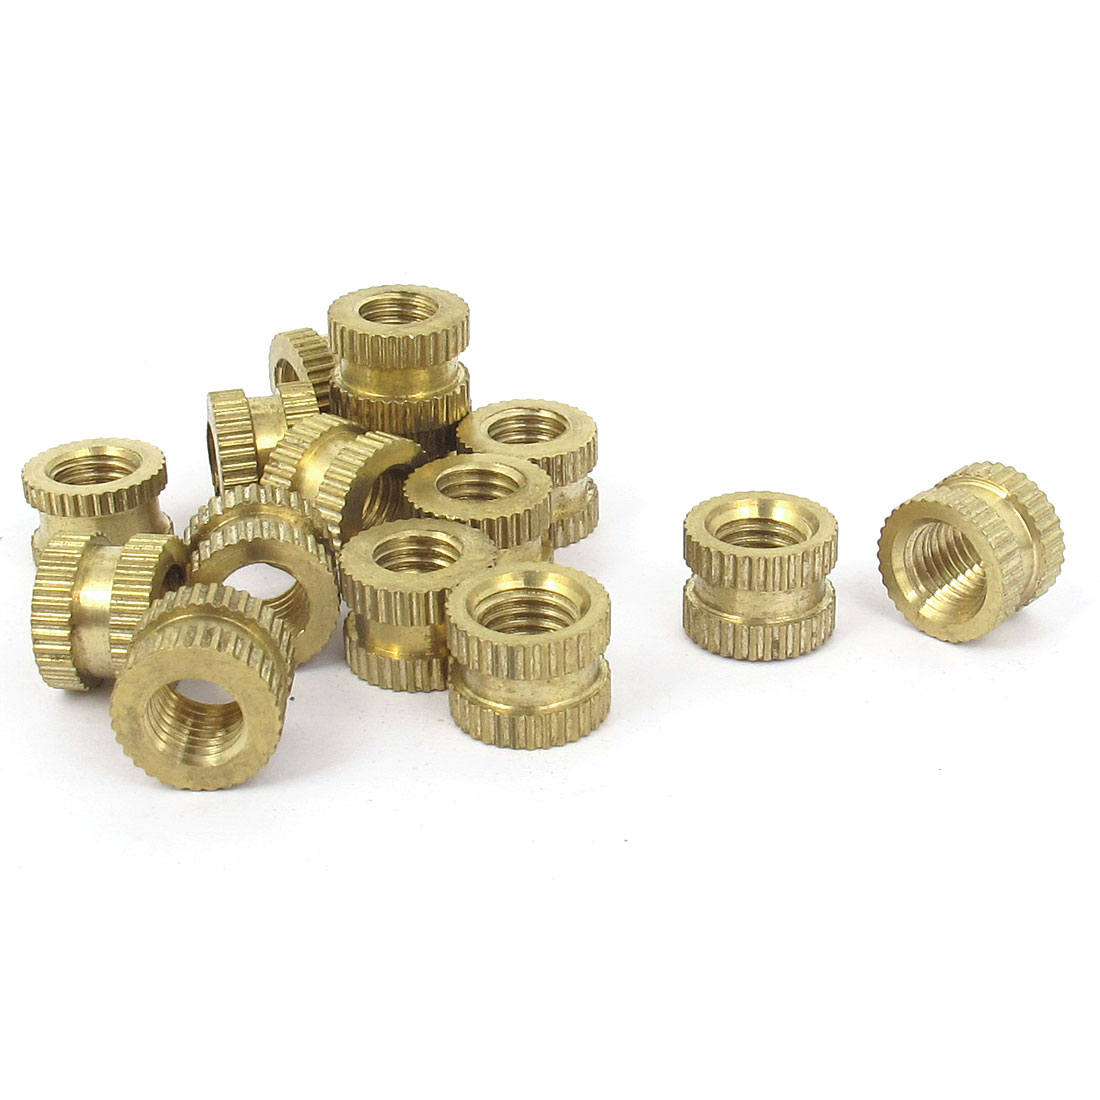 "15 Pcs 1/4""-28x7.5mm(L)x10mm(OD) Metric Threaded Brass Knurl Round Insert Nuts"